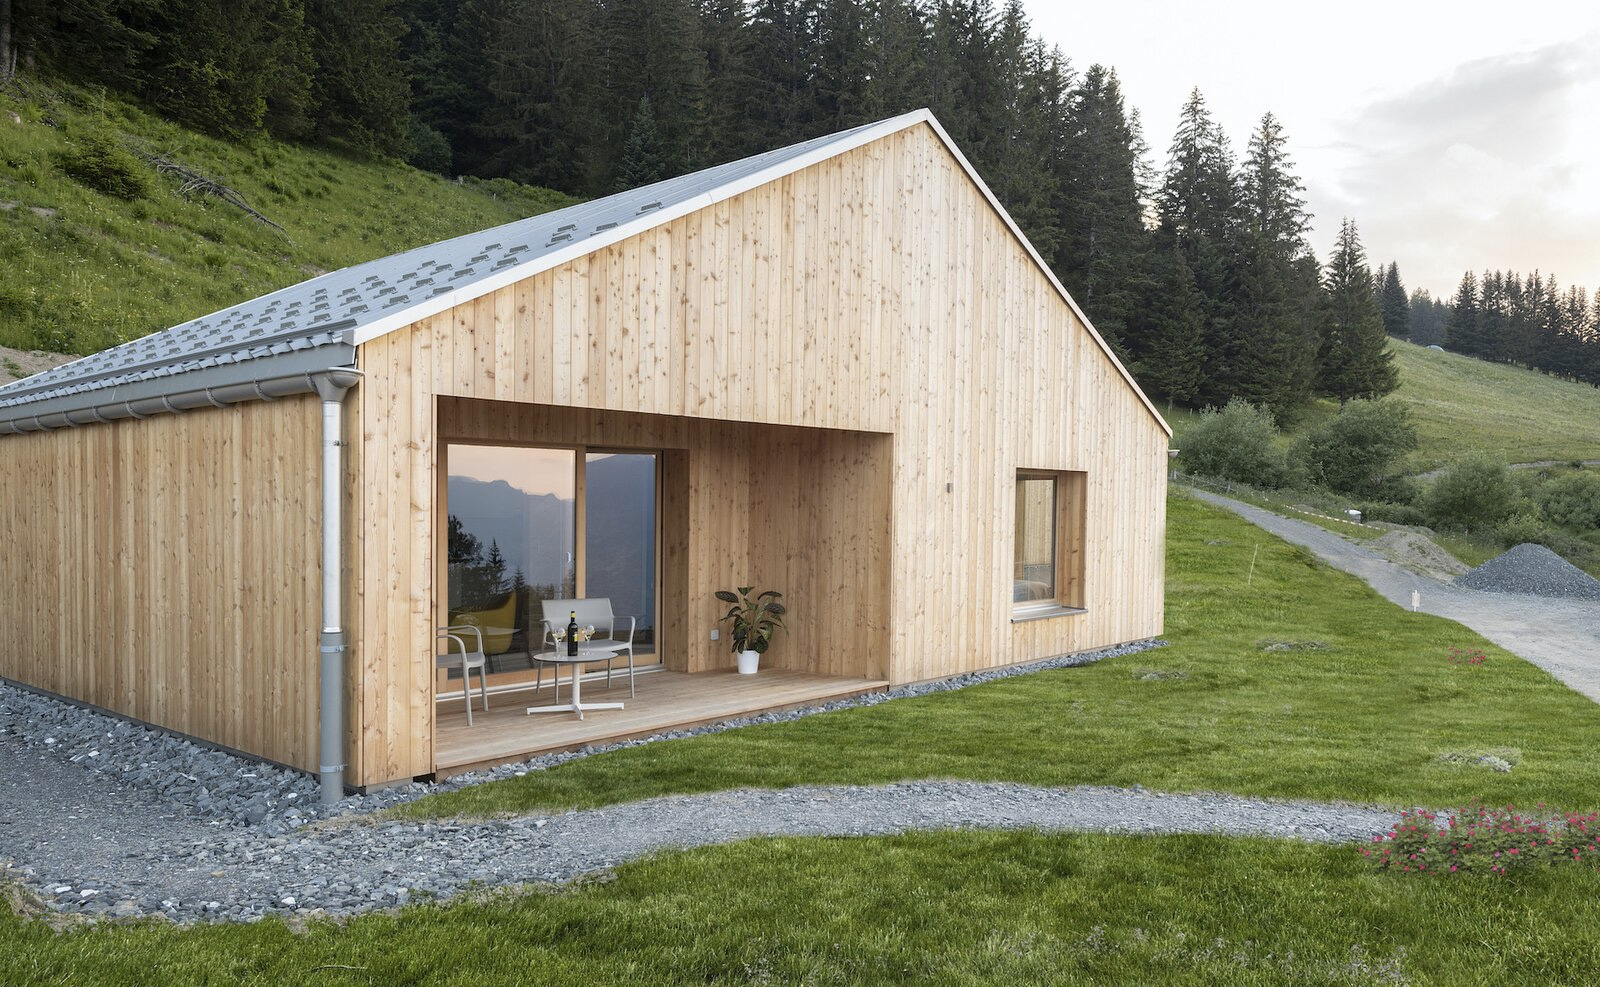 Whitepod is an eco-friendly village in the middle of the Swiss Alps